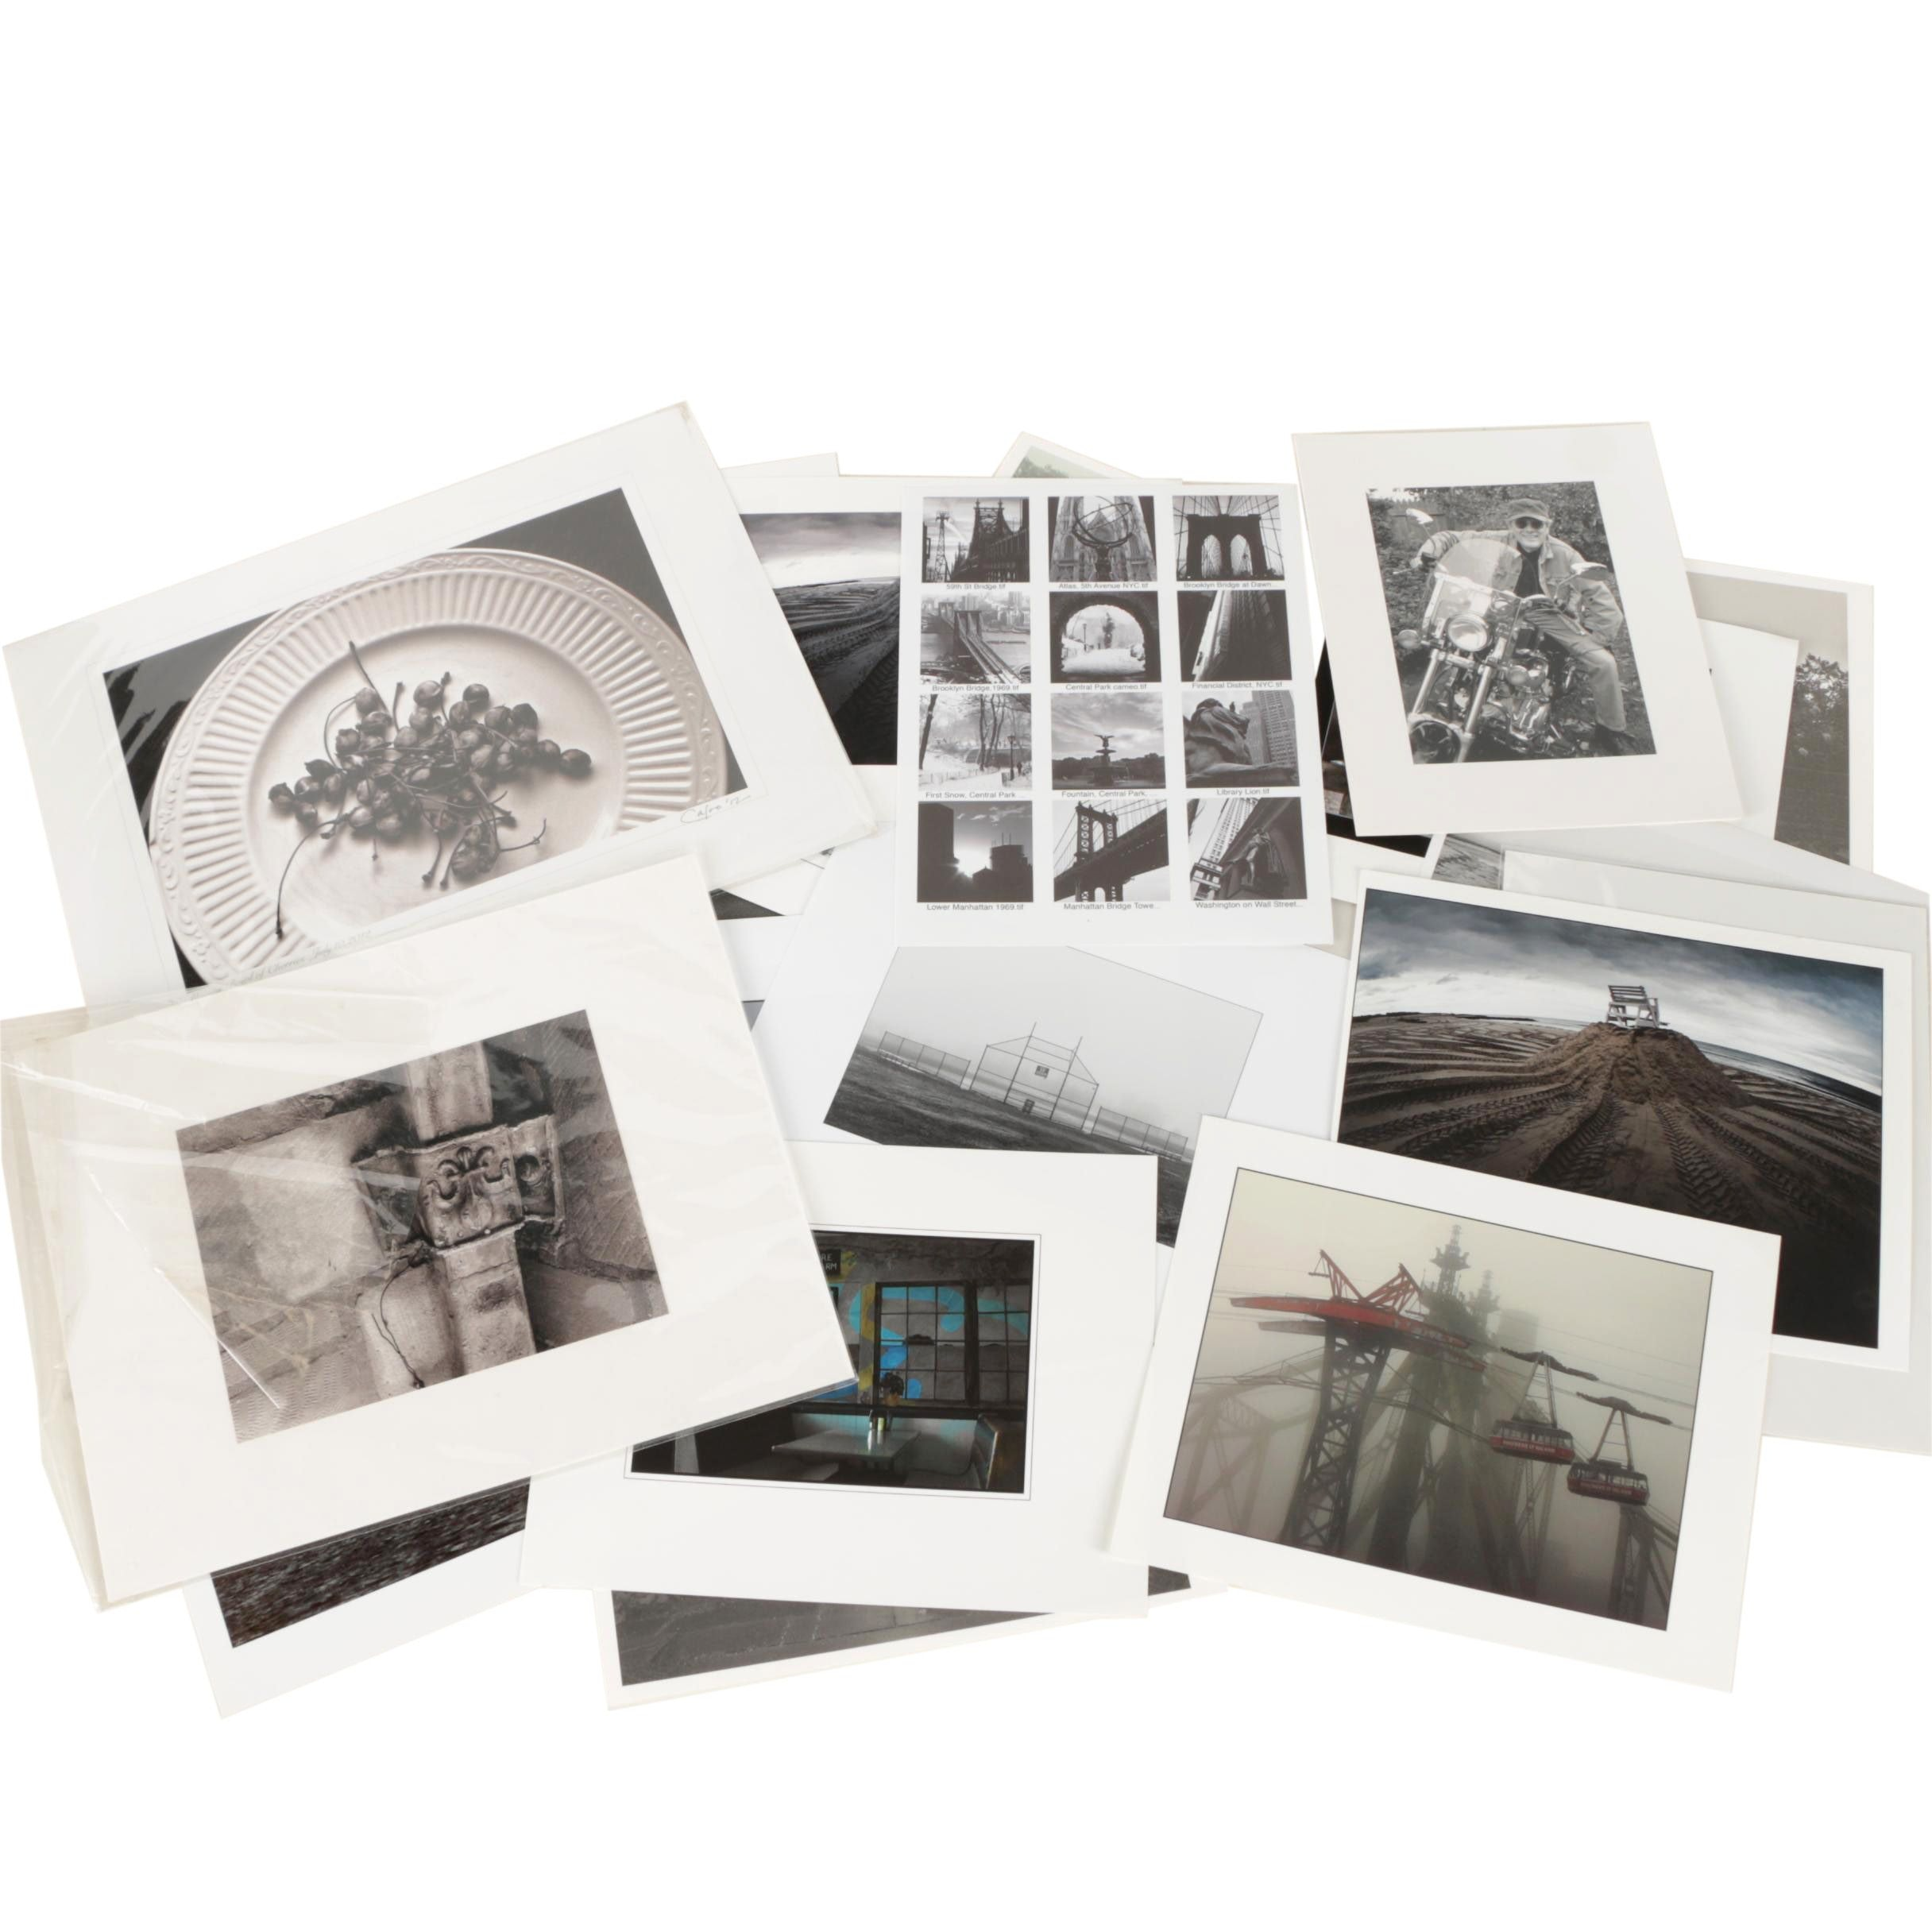 Collection of Digital Photographs Including Images of Landscapes